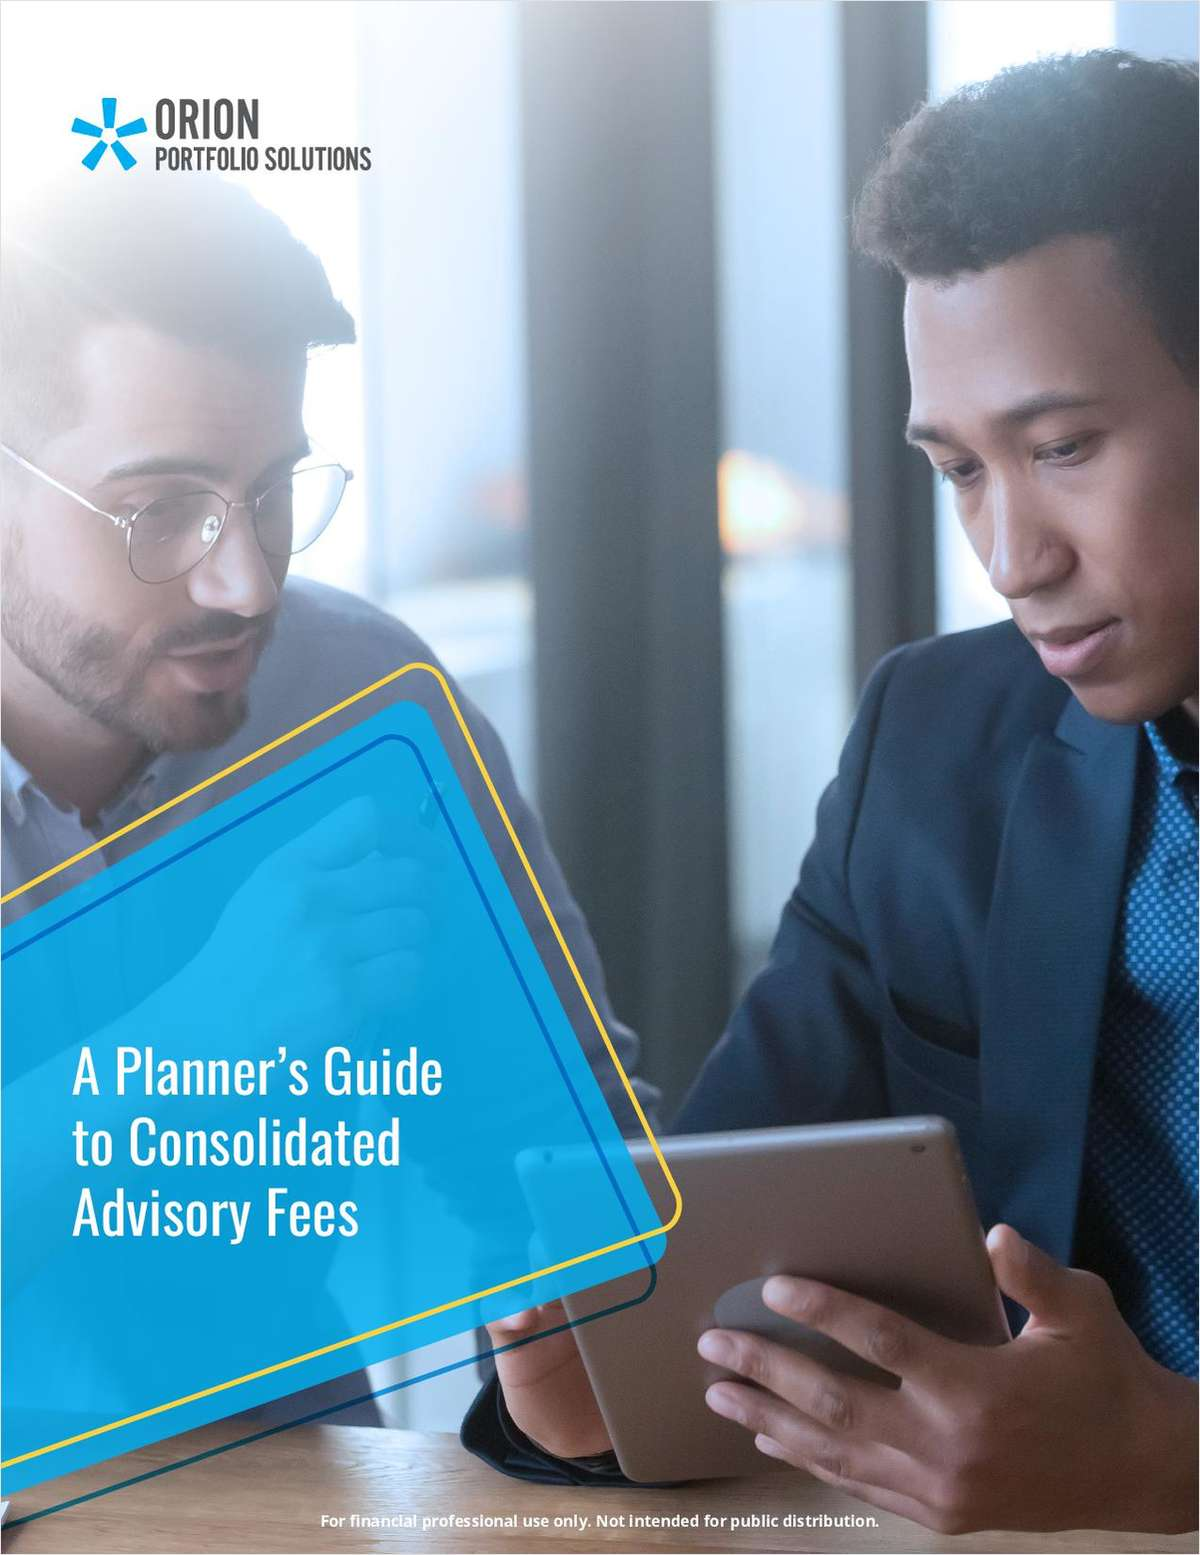 A Planner's Guide to Consolidated Advisory Fees